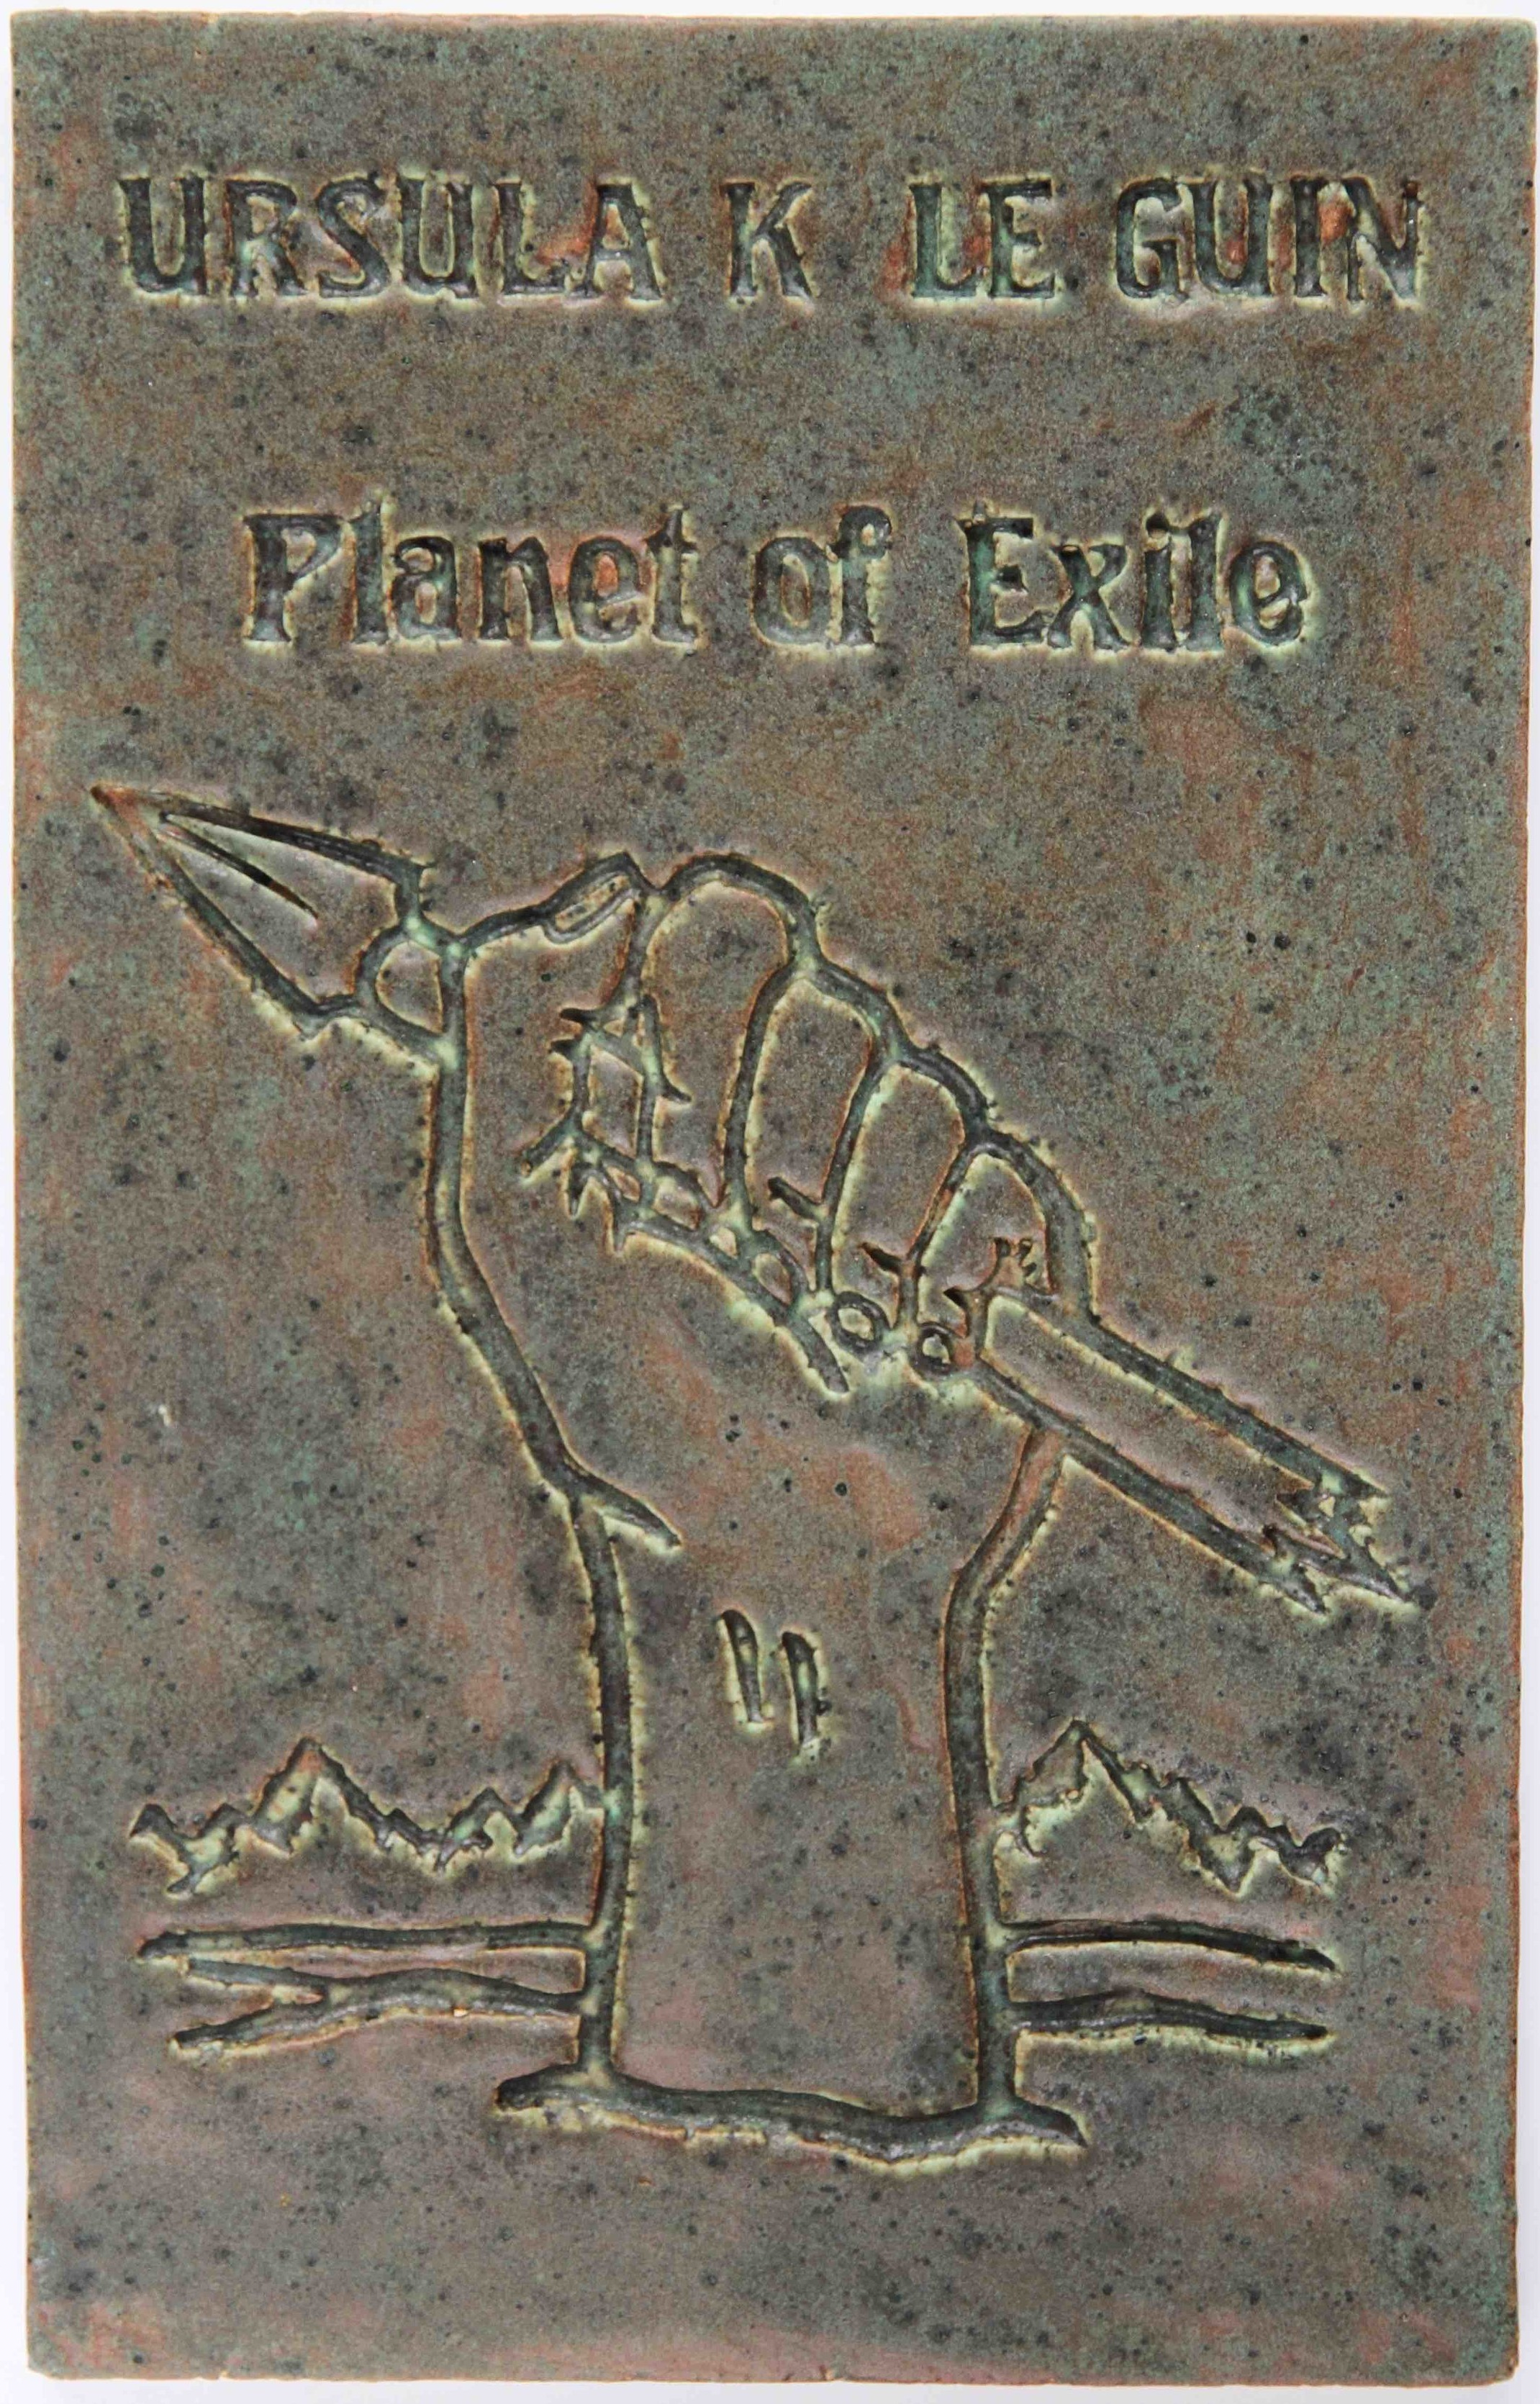 Planet+of+Exile+4.jpg